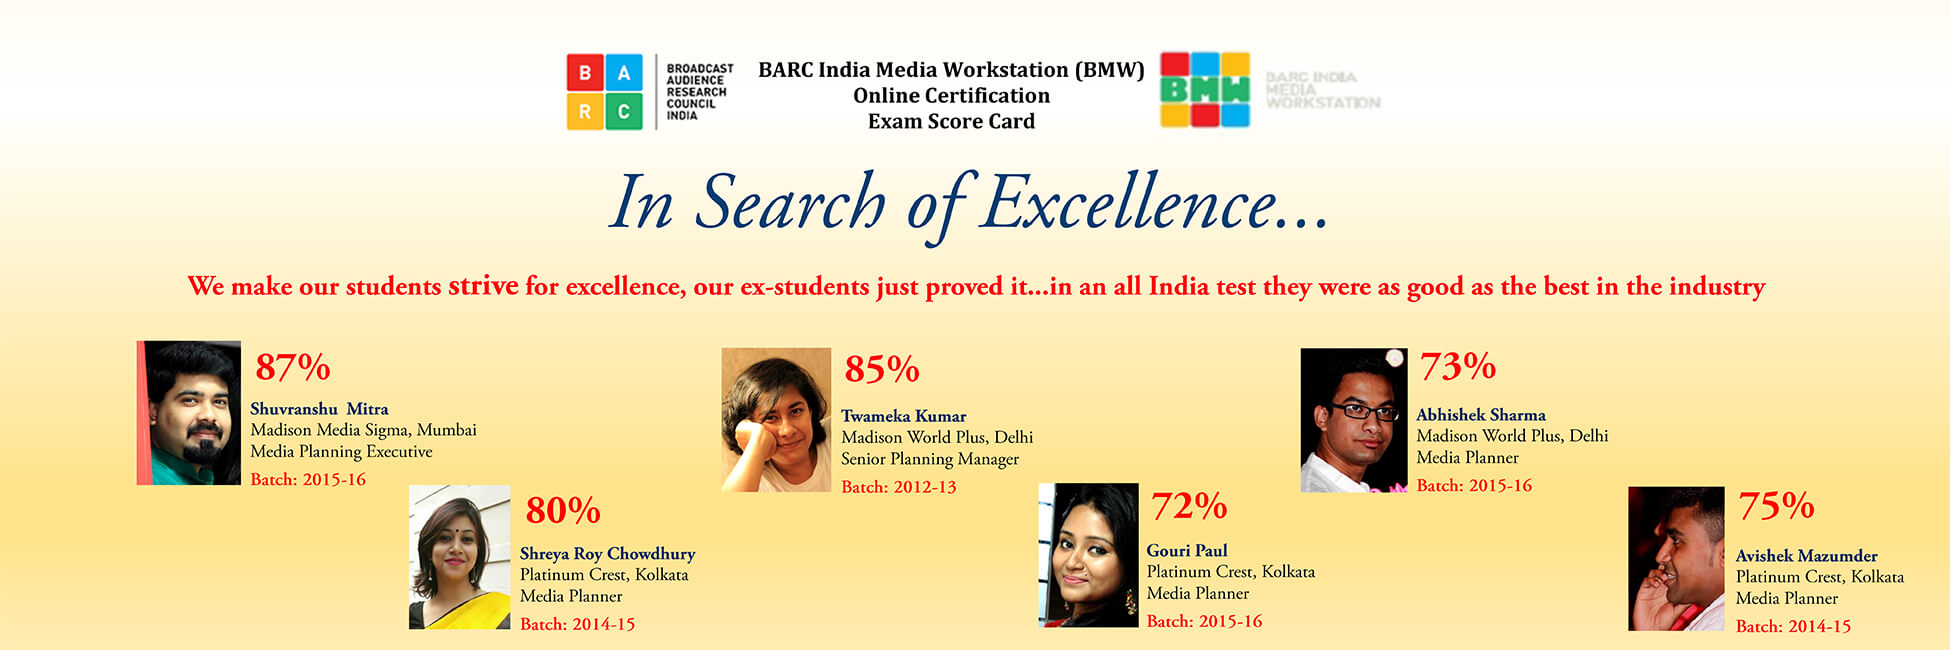 barc-india-certification